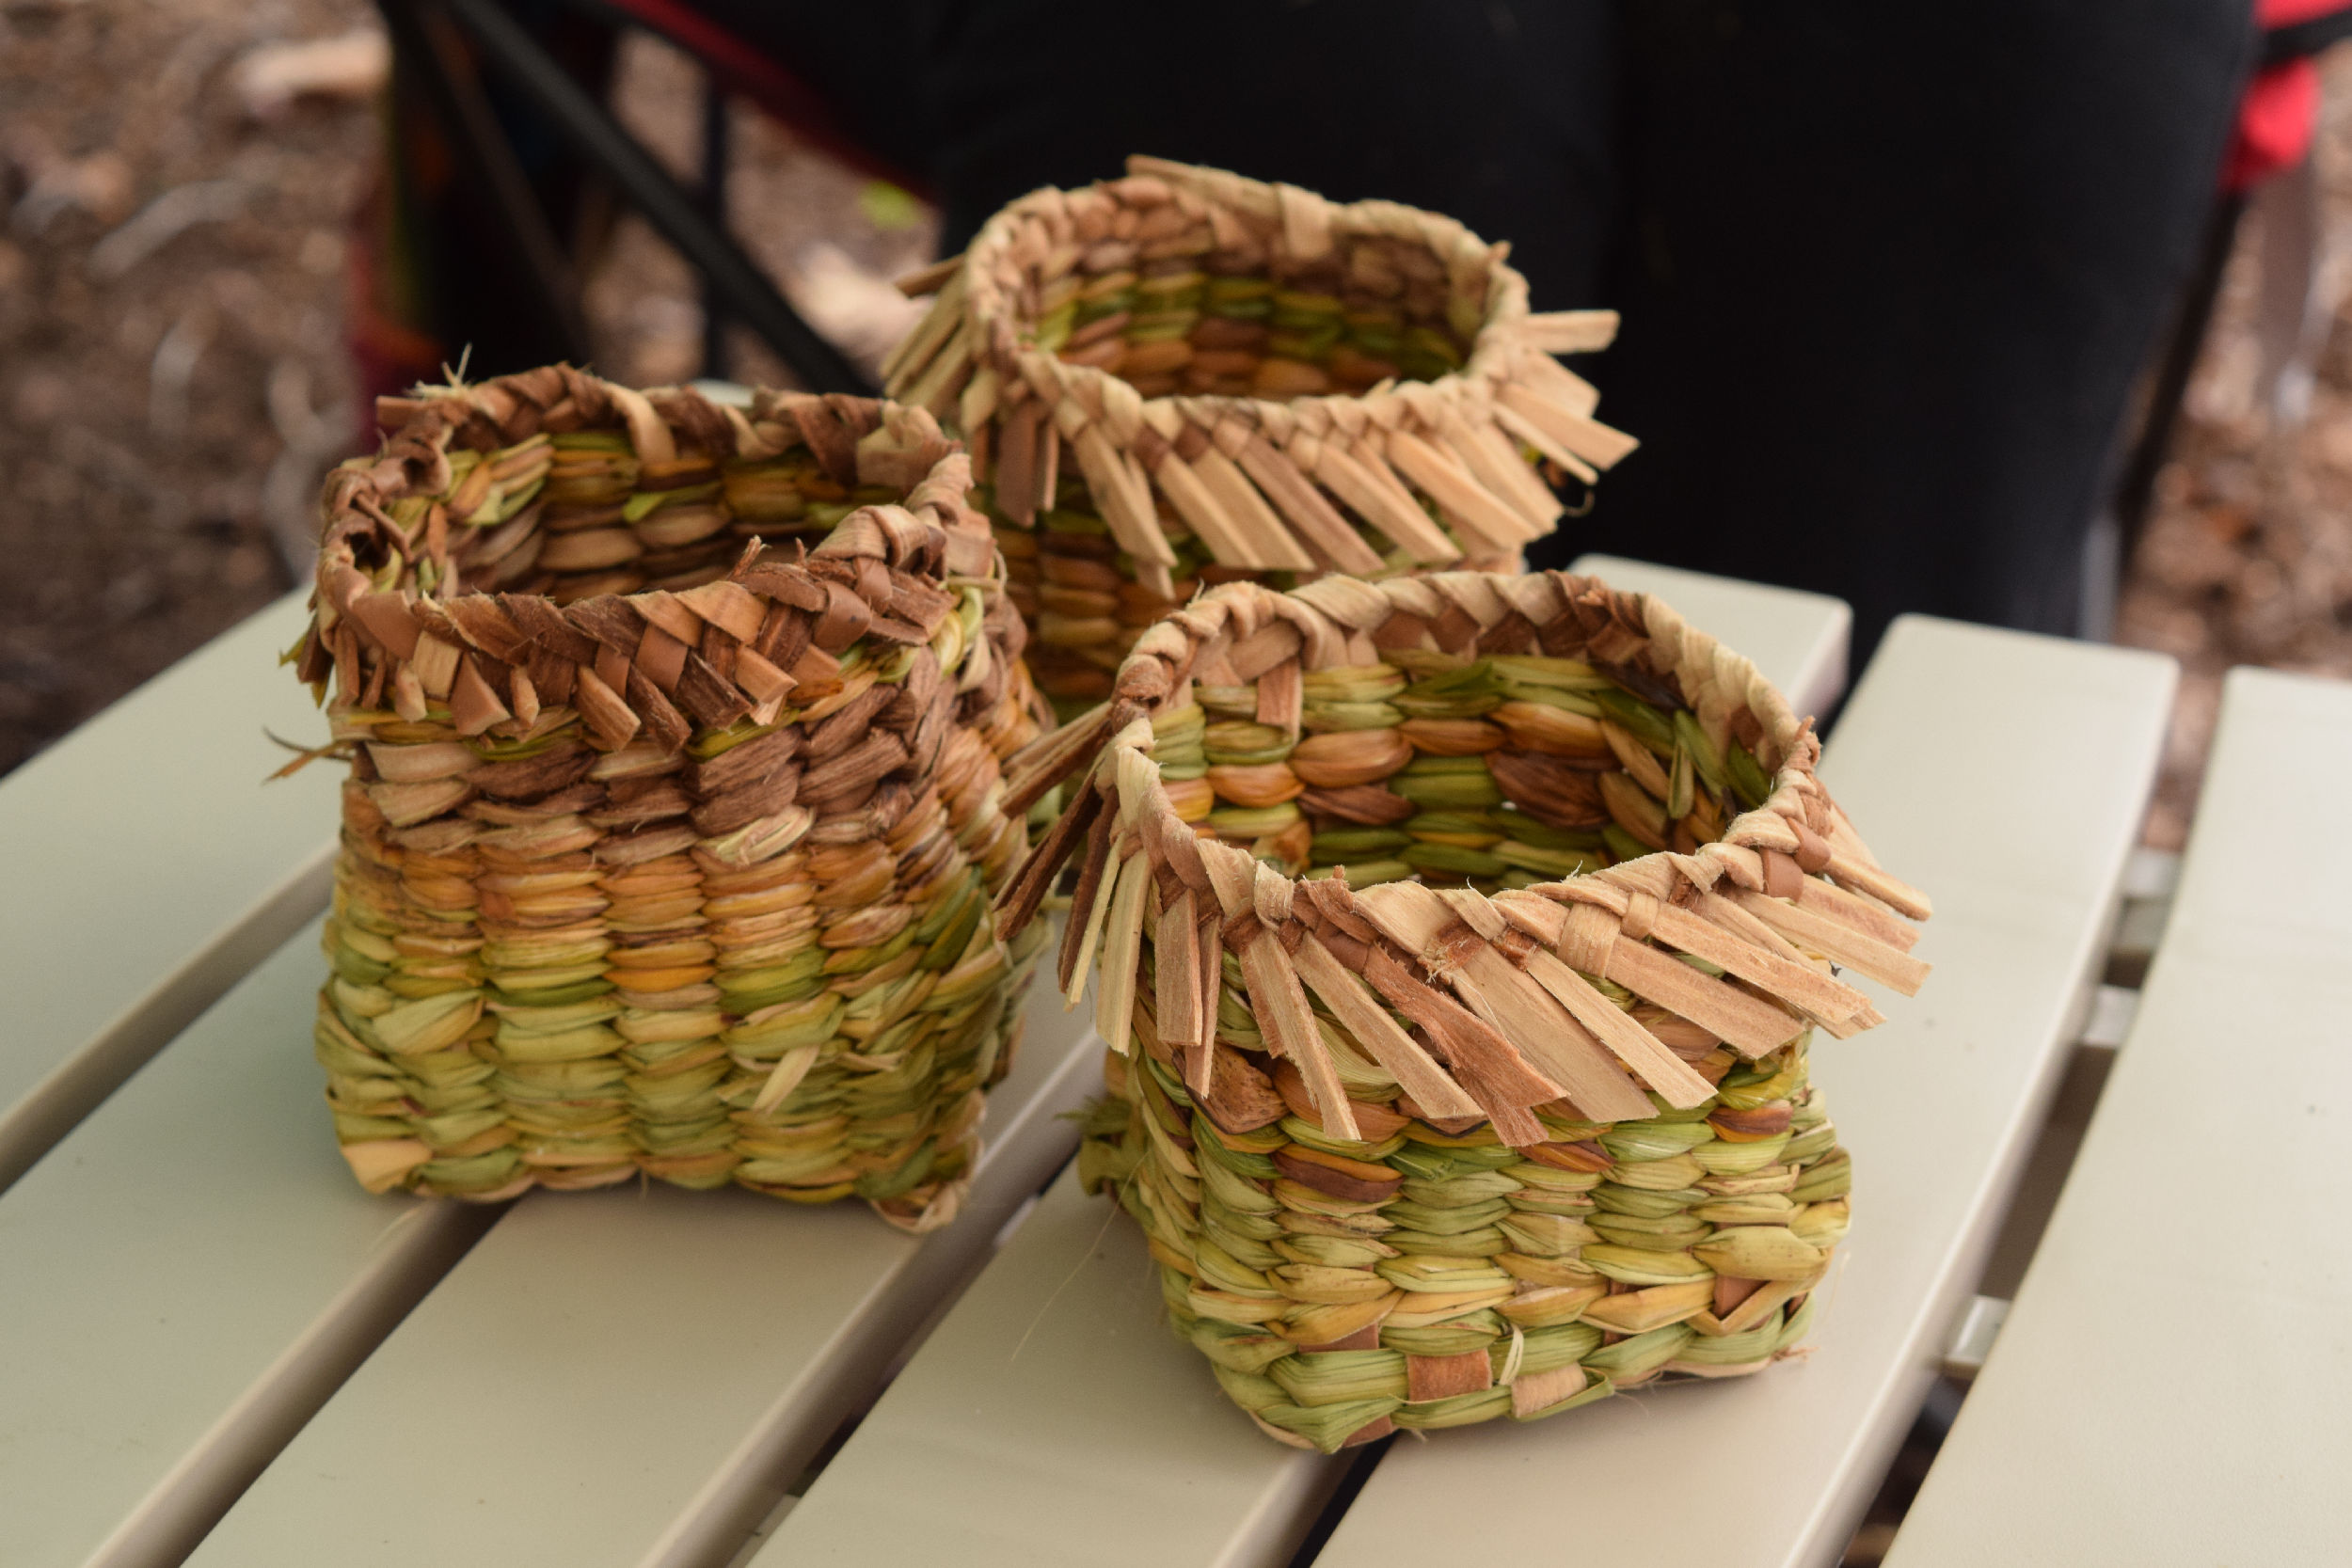 cattail and iris baskets